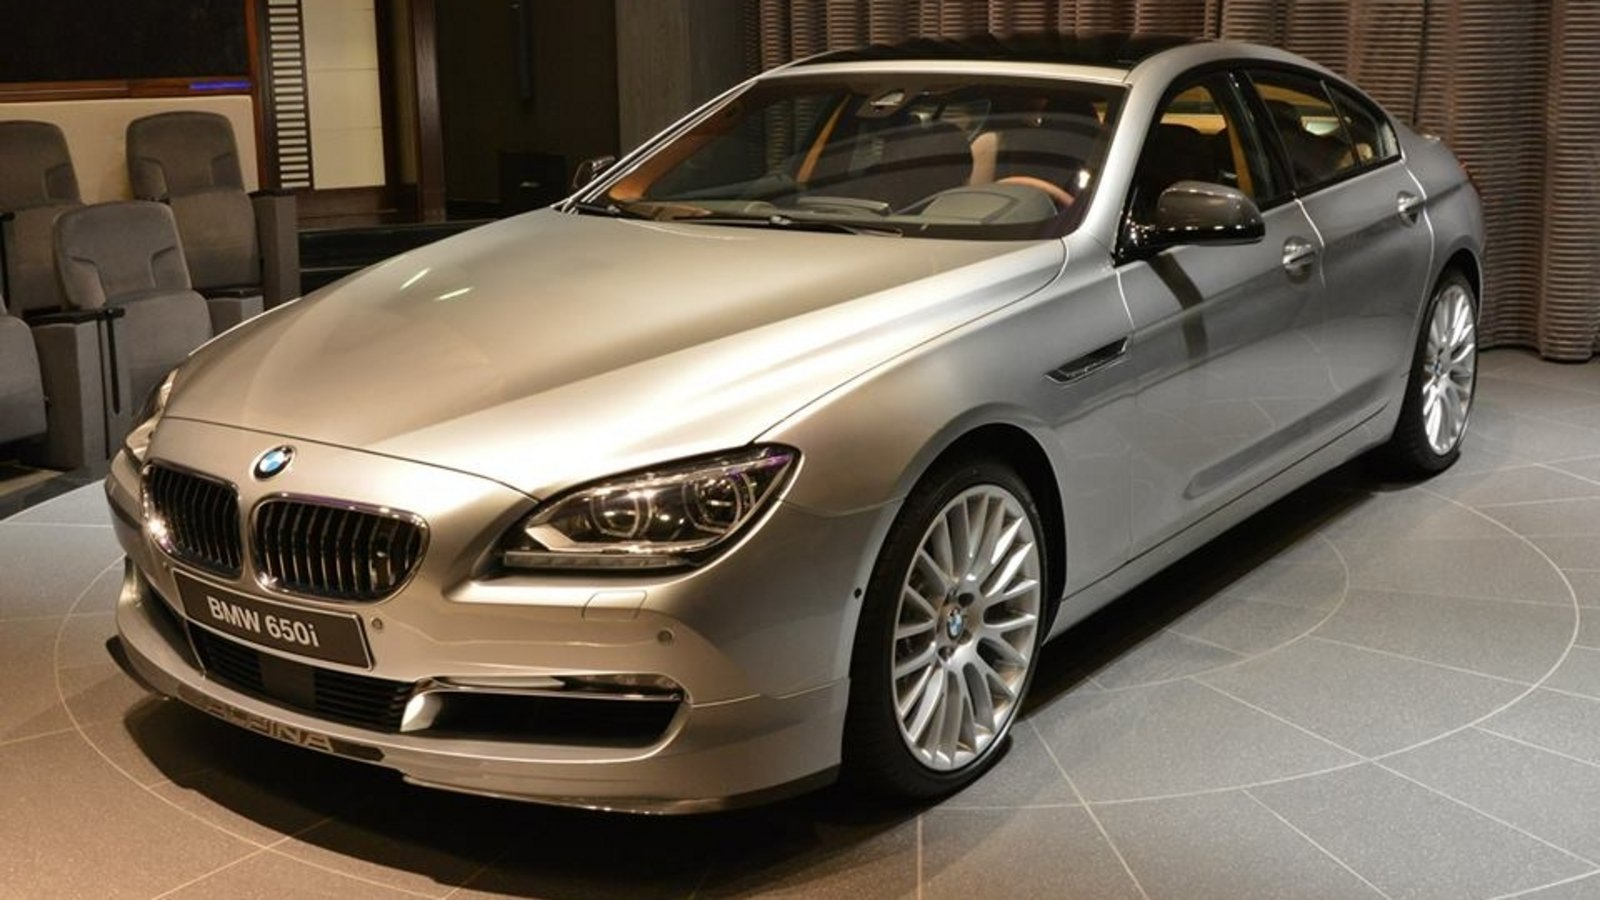 2015 bmw 6 series gran coupe pearl edition review top speed. Black Bedroom Furniture Sets. Home Design Ideas